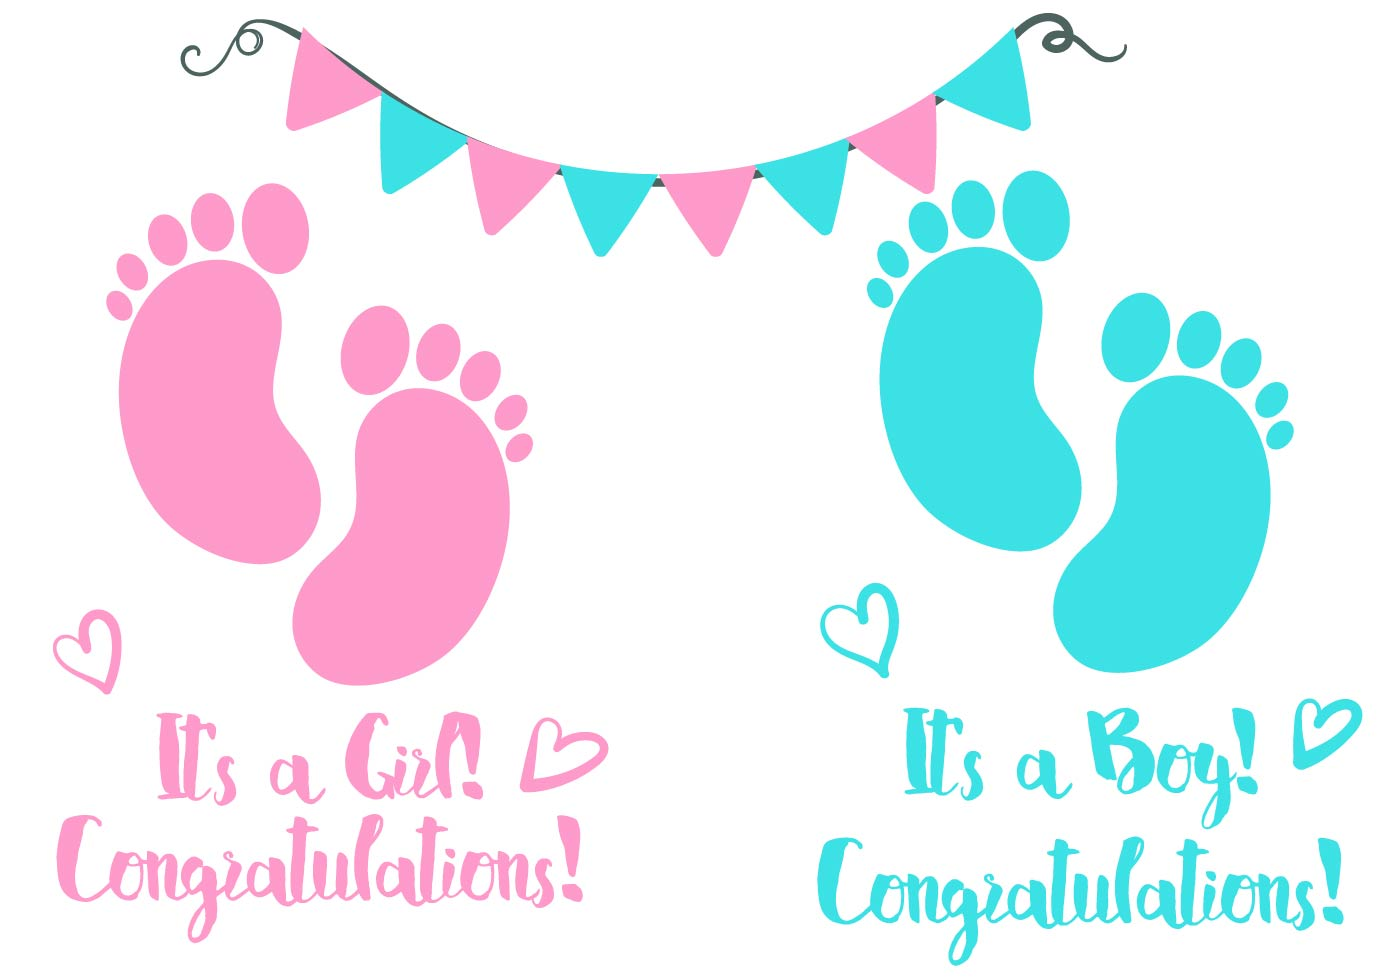 Baby girl birth announcement clipart png library Baby Girl Birth Announcement Clipart - Free Clipart png library